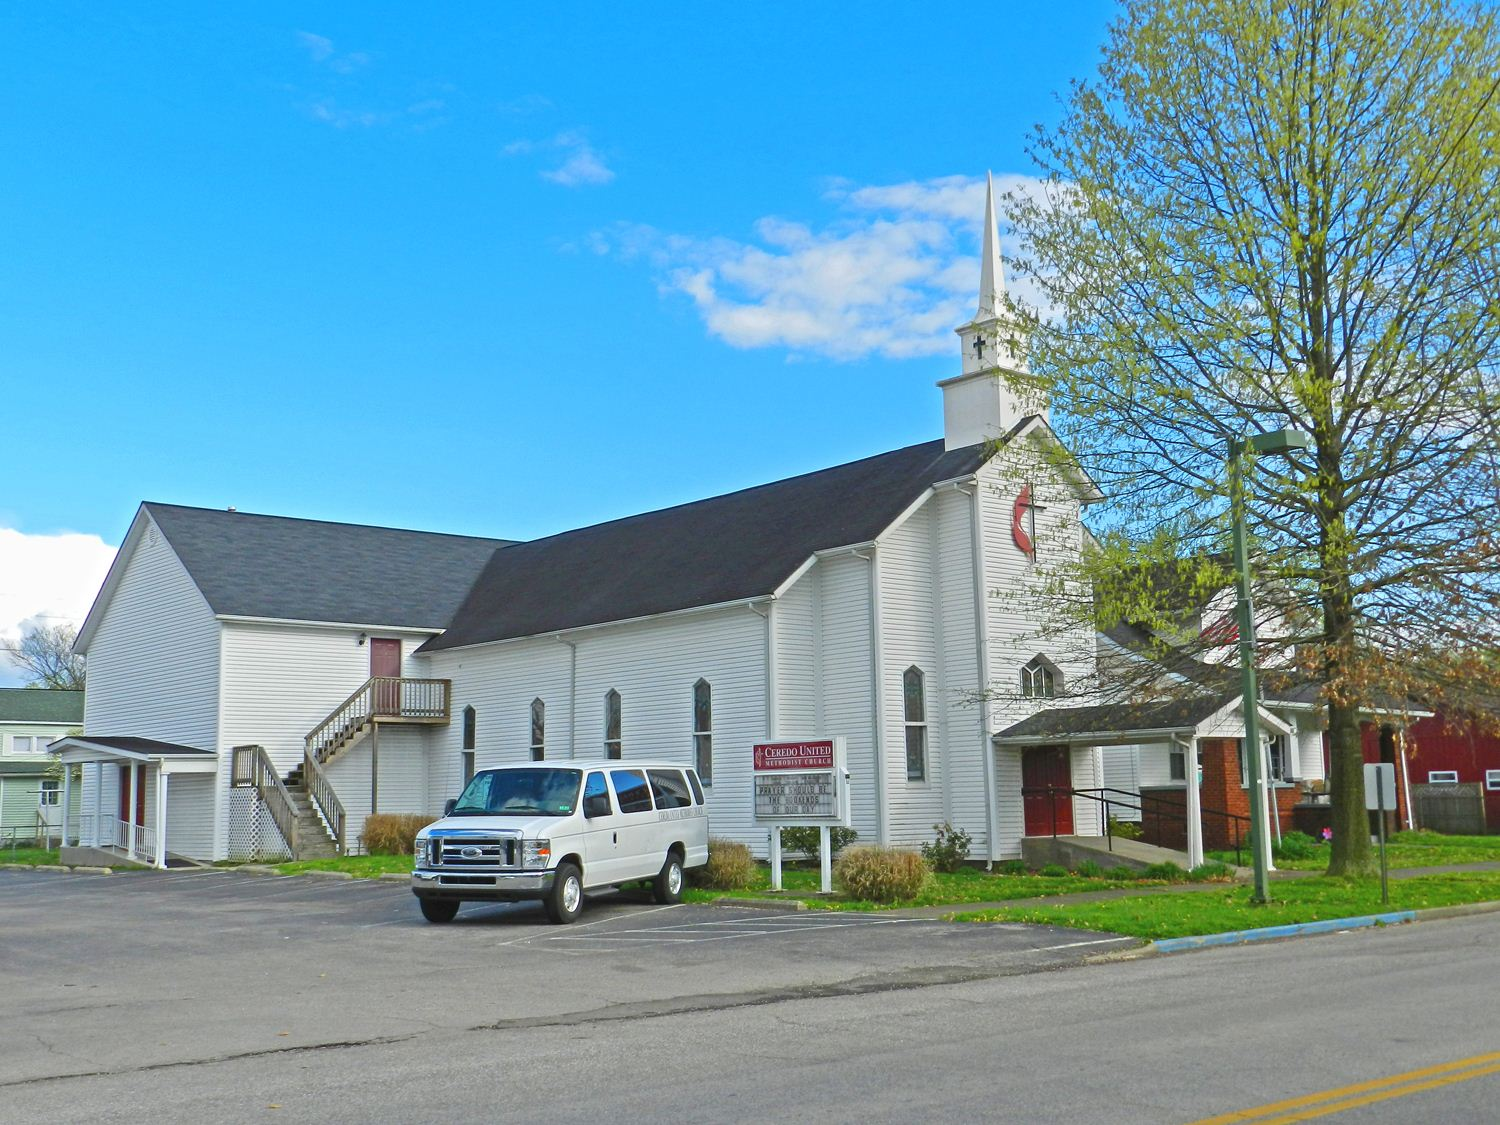 The CUMC sanctuary was constructed around 1879 and remains in use today.